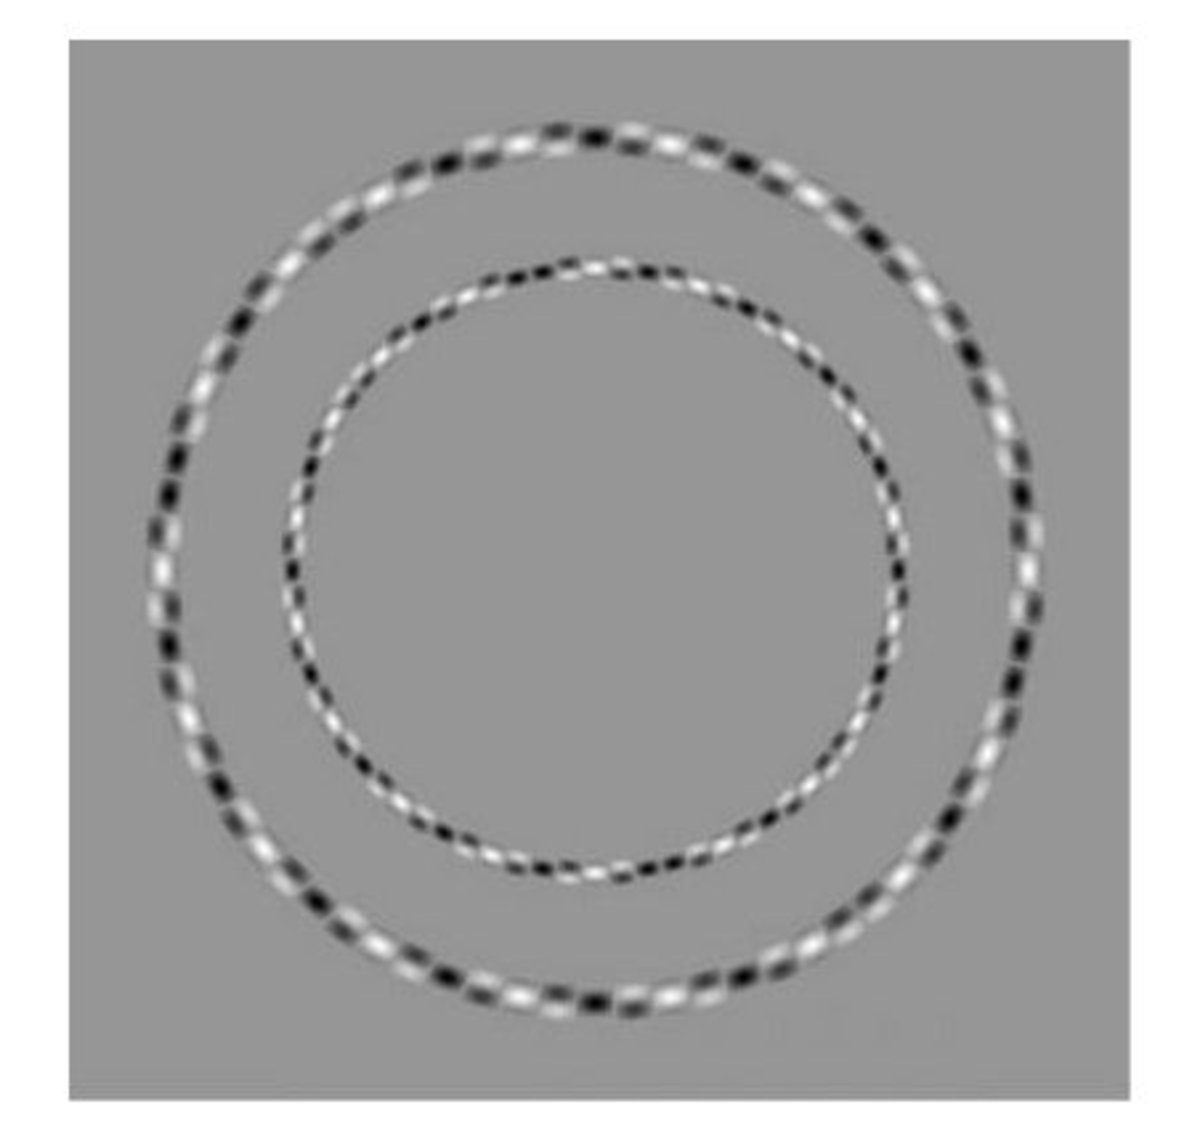 The circles look distorted because of the black and white patterns on them!